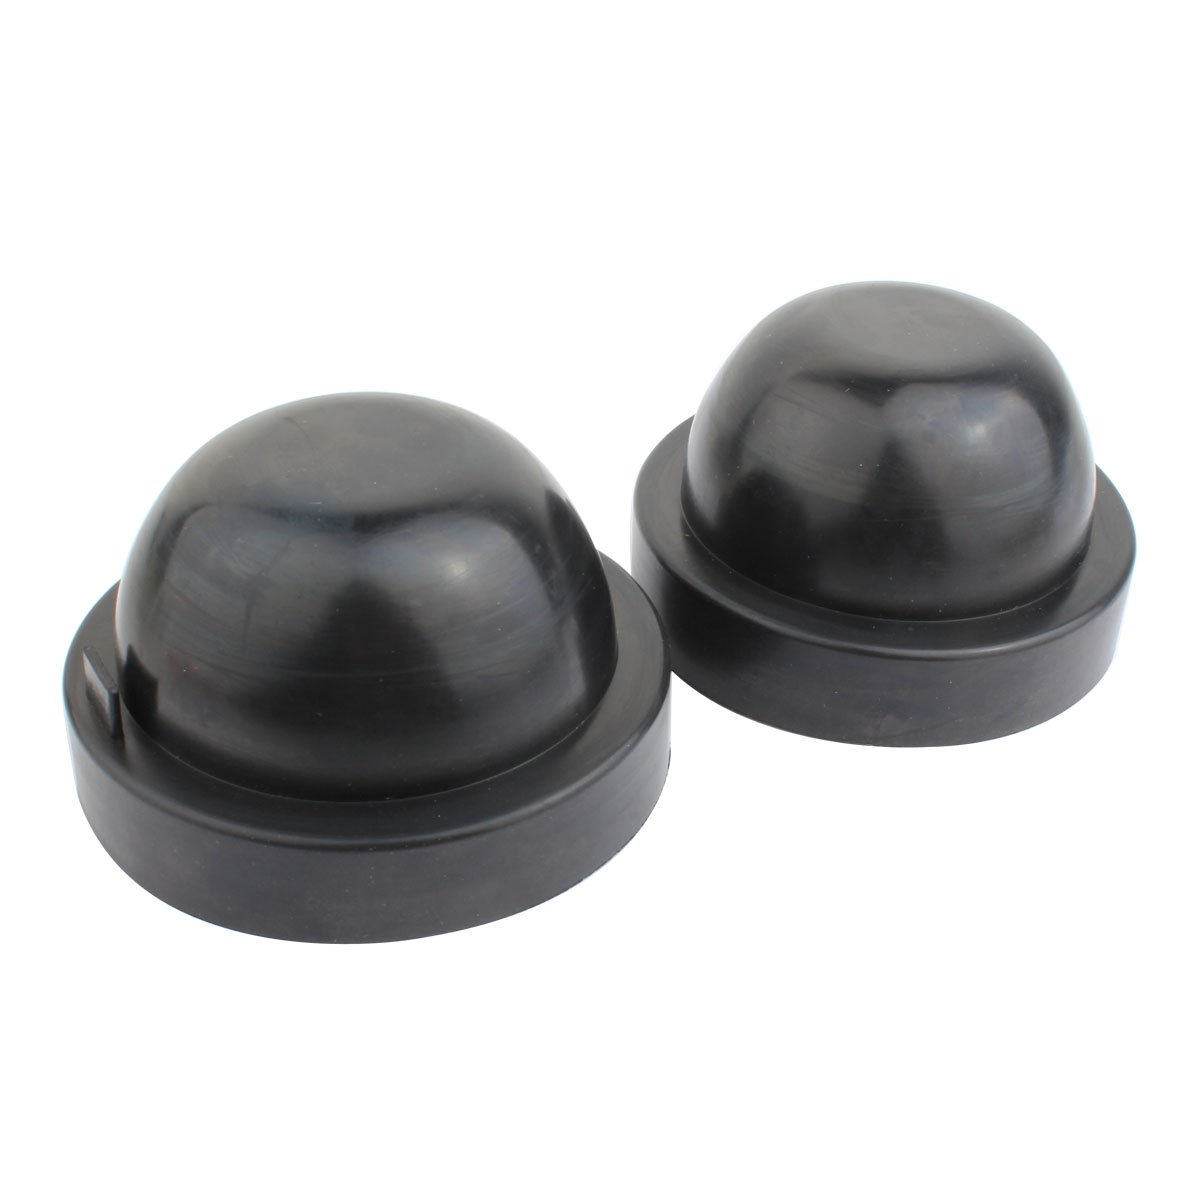 TOMALL 80mm 3.15 inch Rubber Seal Dustproof Covers for LED Headlight Conversion Kit